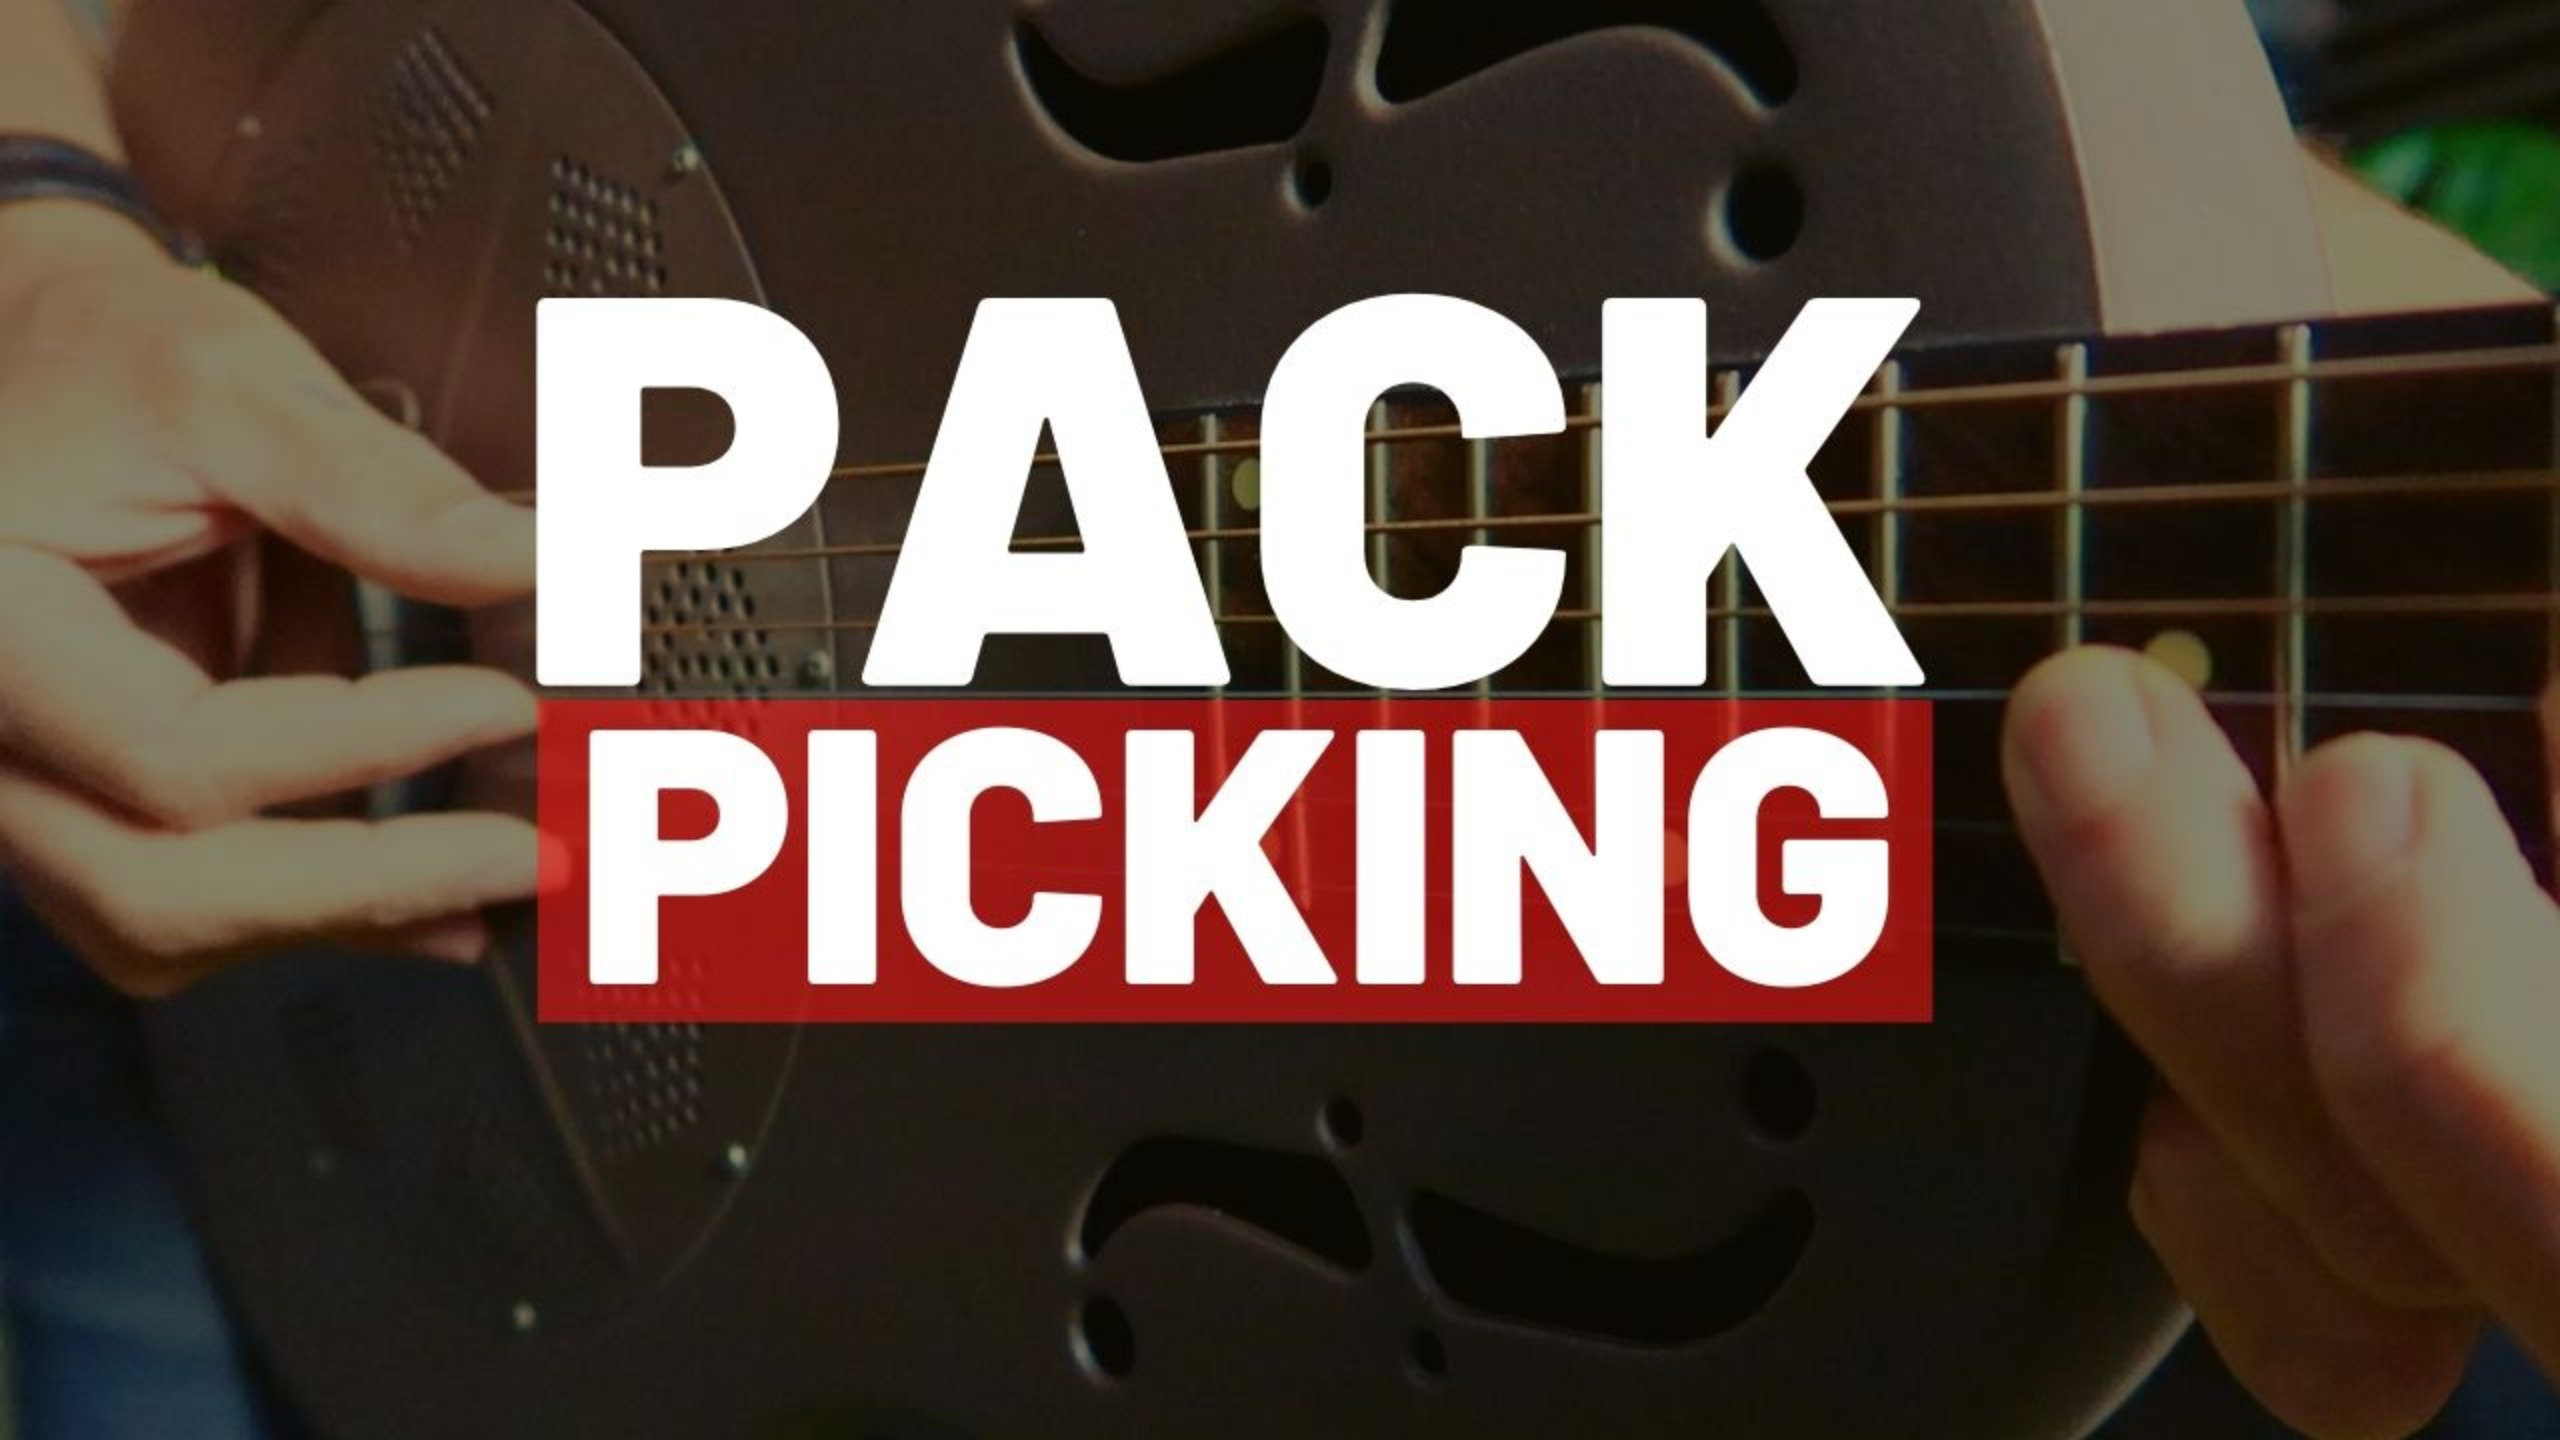 PACK PICKING